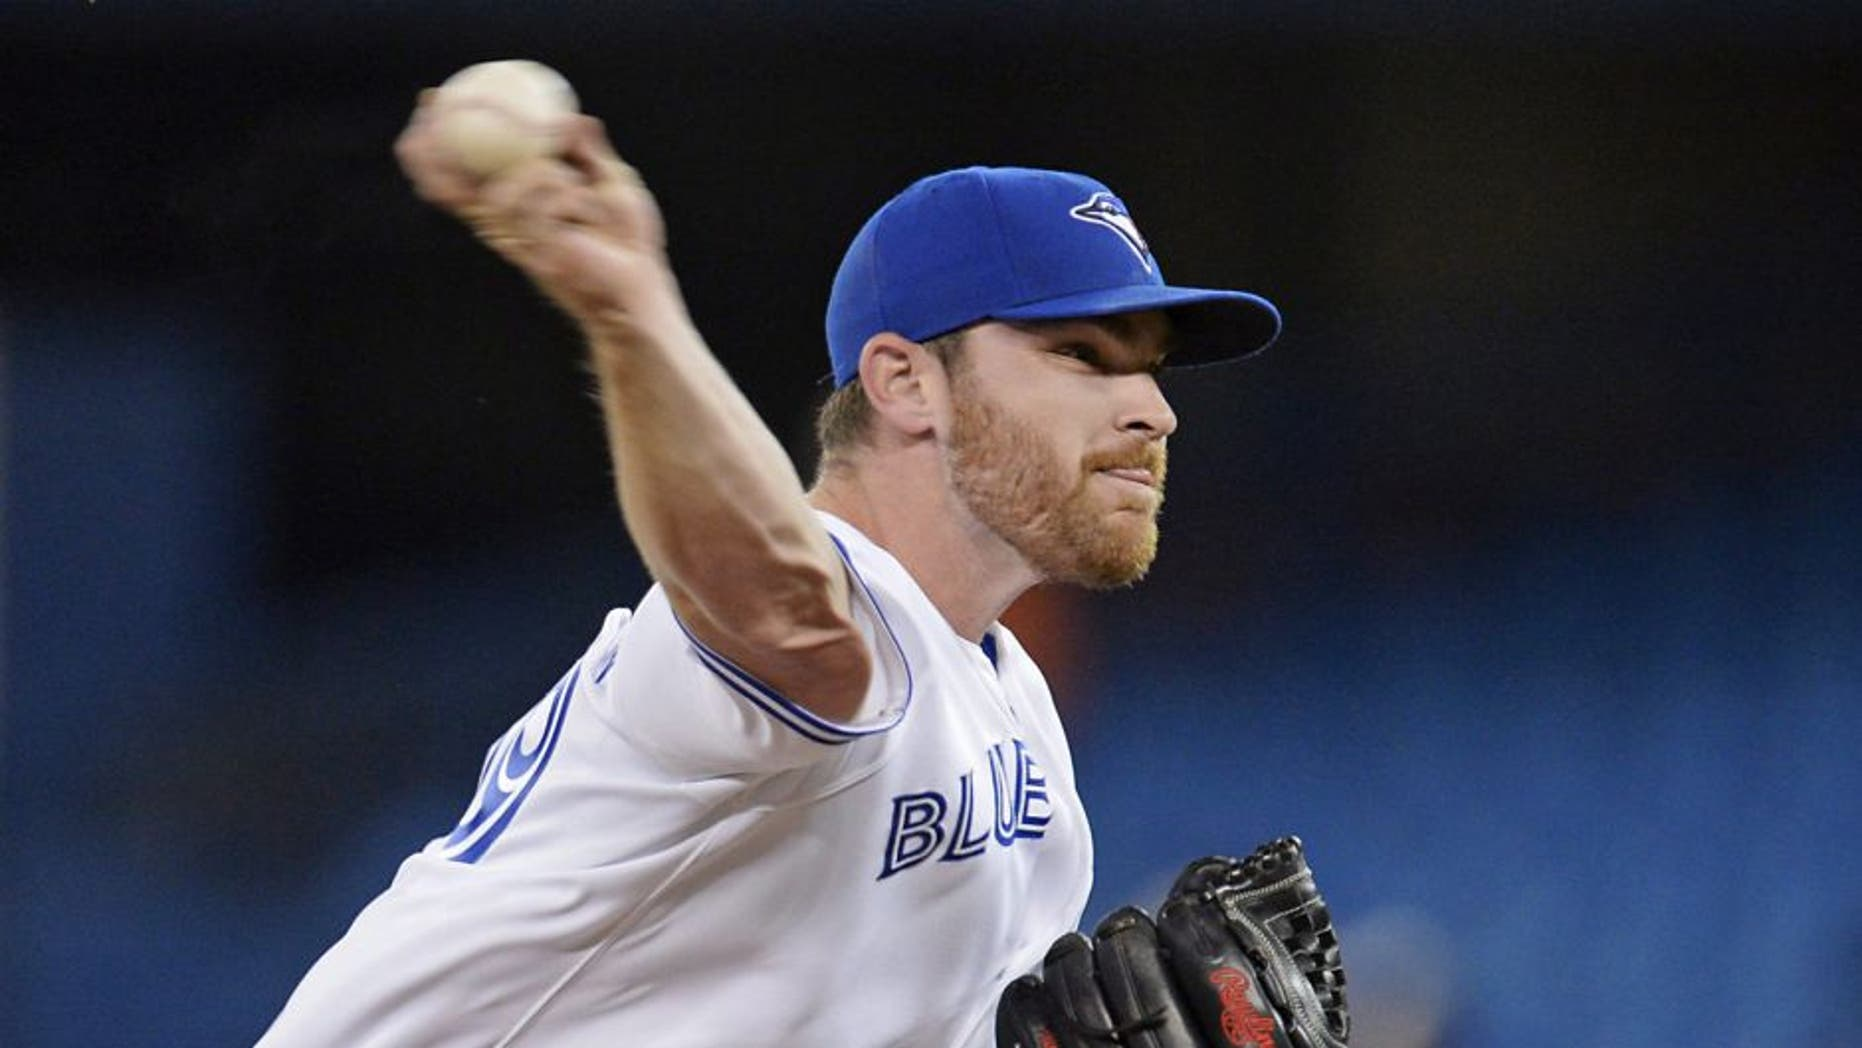 Toronto Blue Jays starting pitcher Liam Hendriks throws against the Oakland Athletics during the first inning of a baseball game Friday, May 23, 2014, in Toronto. (AP Photo/The Canadian Press, Frank Gunn)